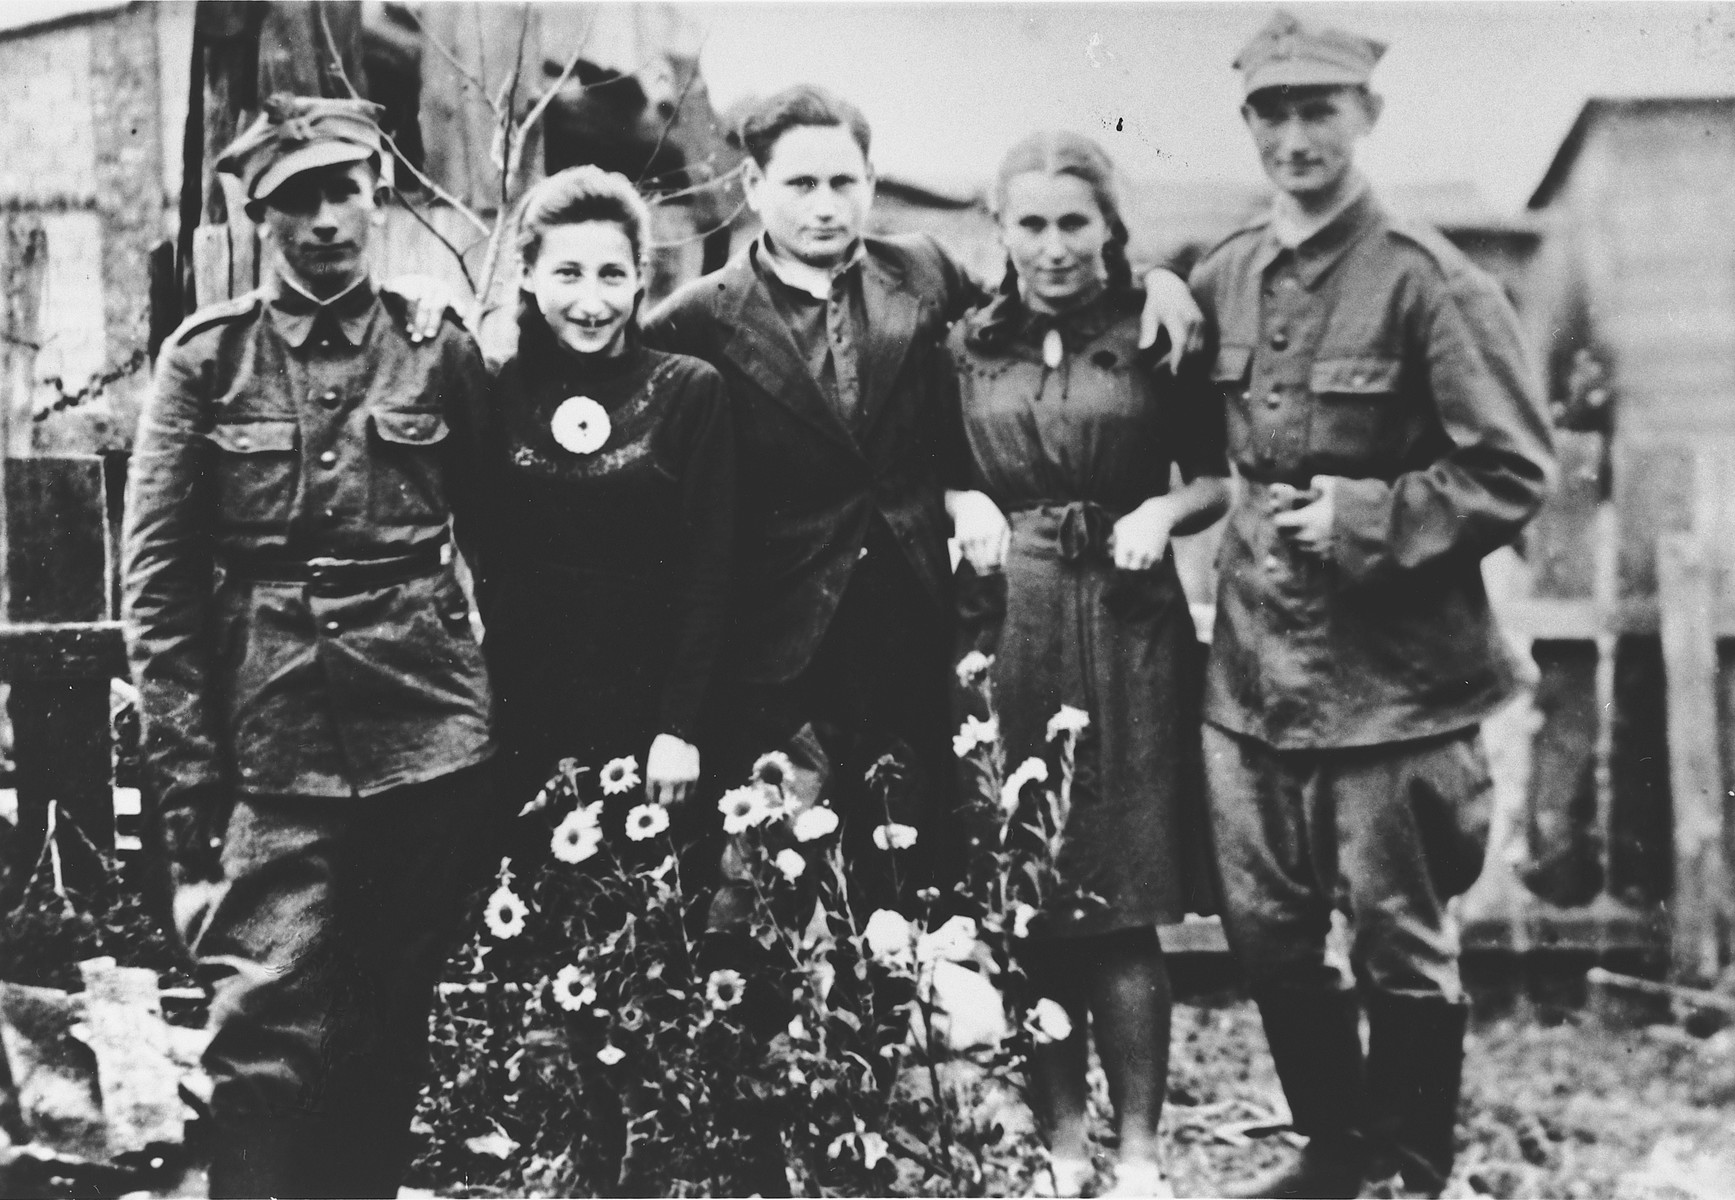 Five Jewish survivors, two of whom were drafted into the Polish army, gather together in Losice.  Yidl Weinstein is on the far left.  Noach Lasman is on the right.